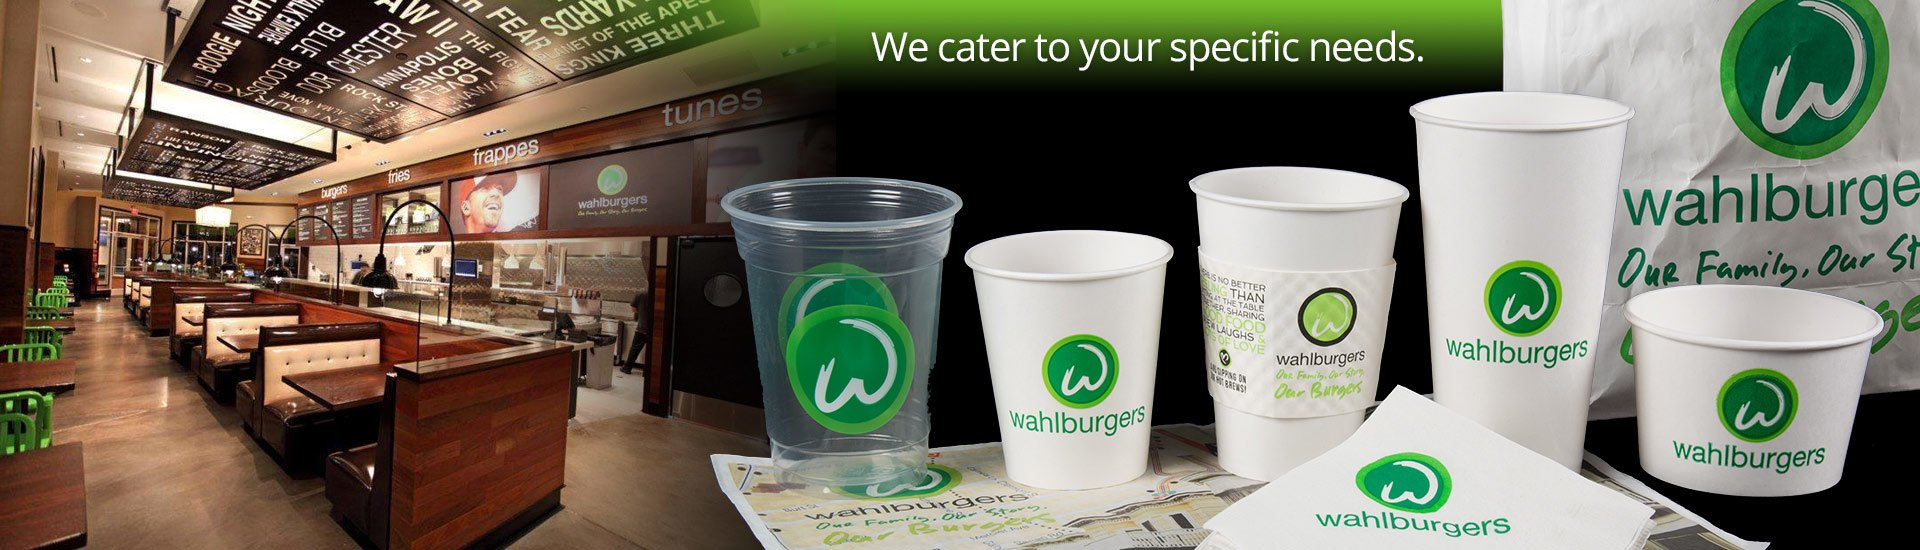 DonahueCorryWebsite_Wahlburgers